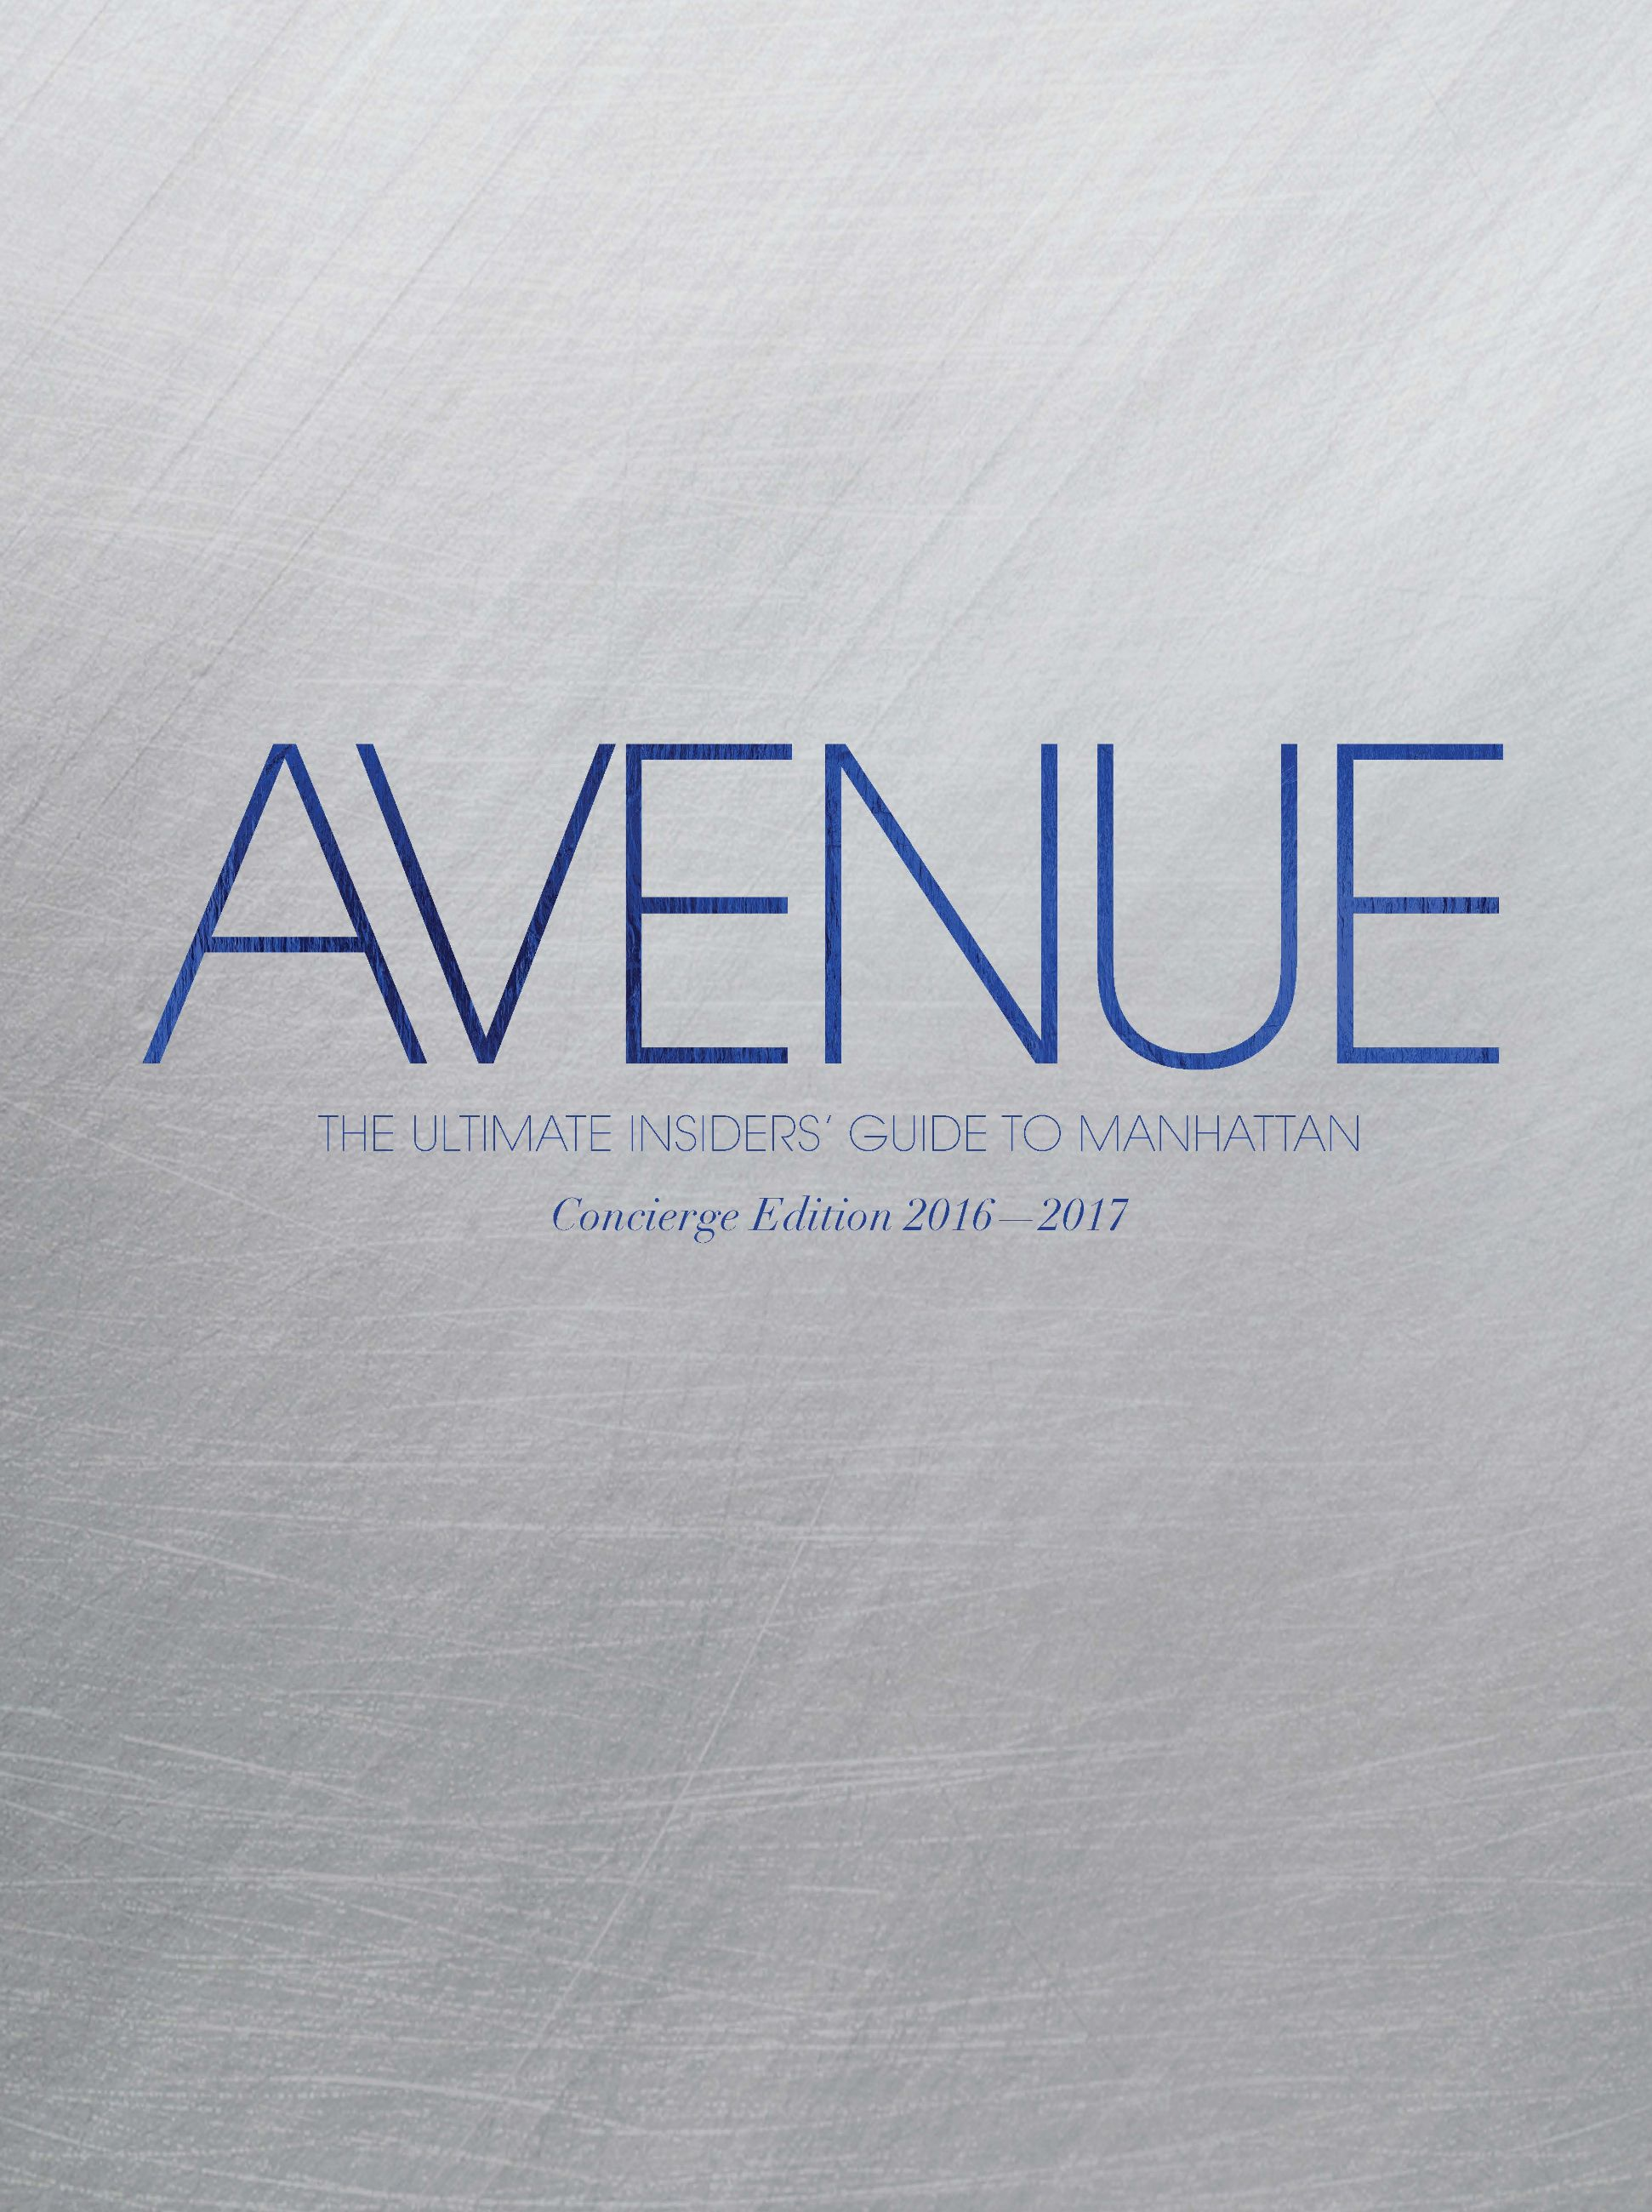 Avenue - Concierge Edition